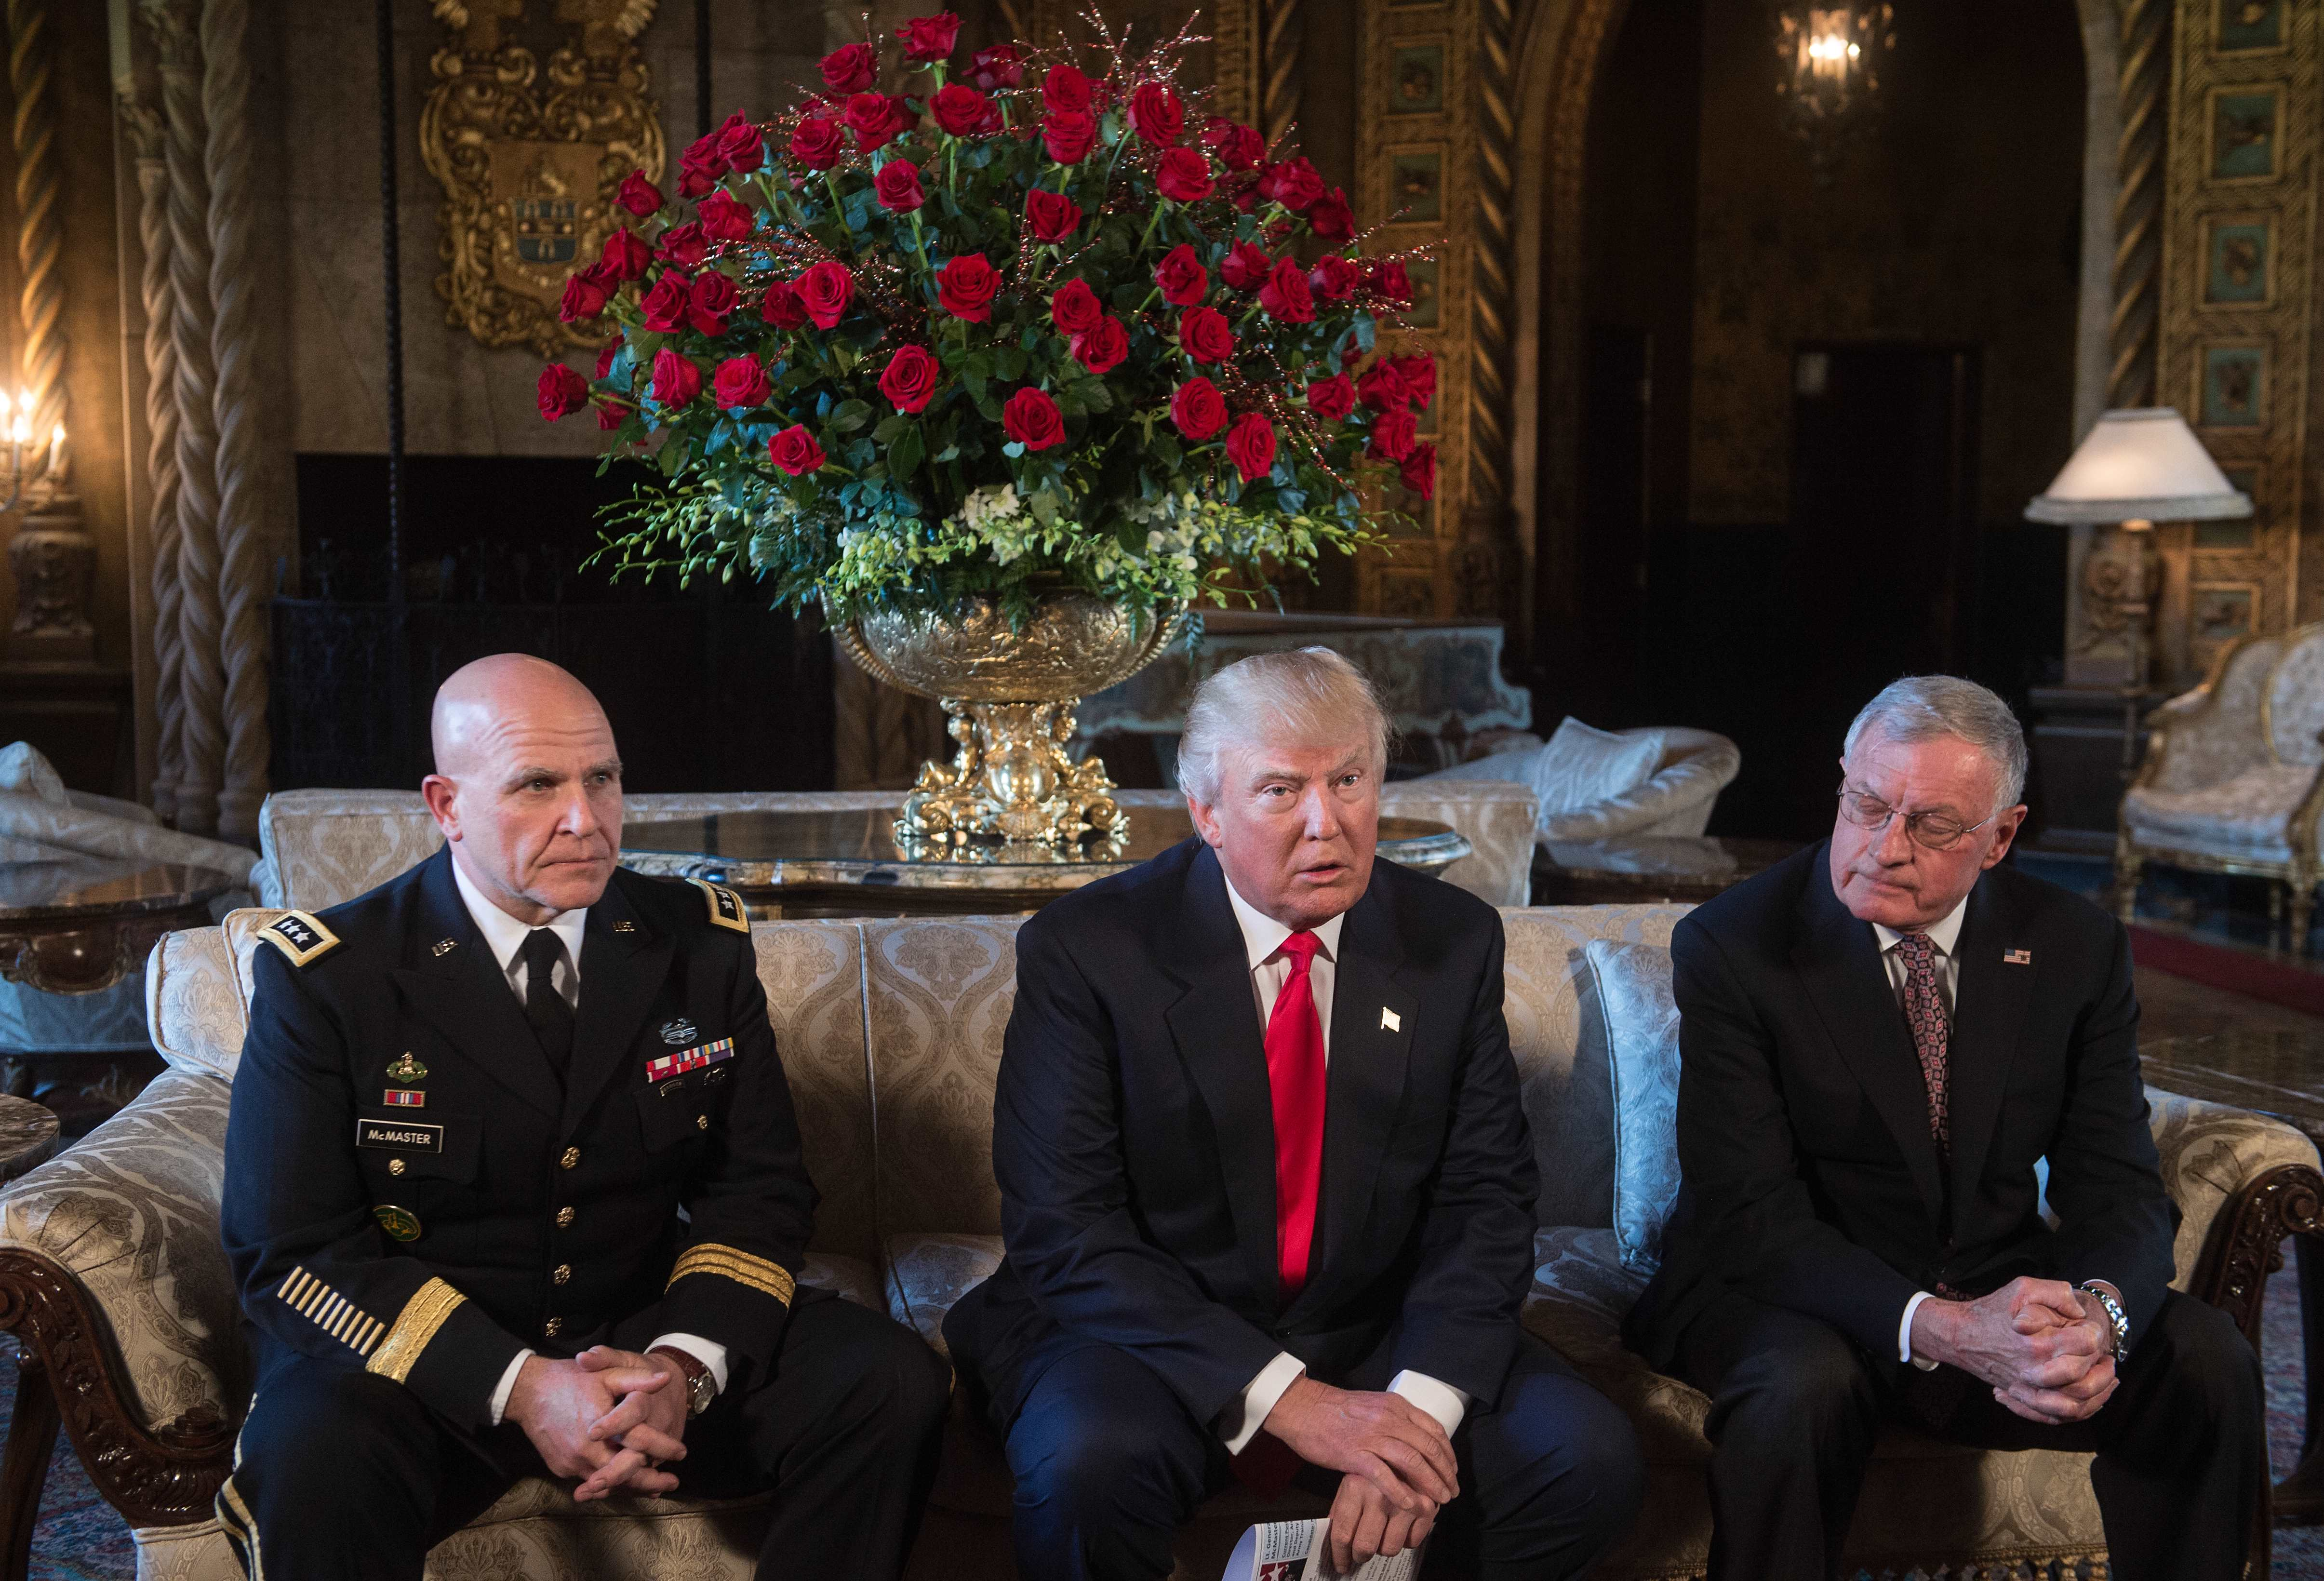 US President Donald Trump (C) announces US Army Lieutenant General H.R. McMaster (L) as his national security adviser and Keith Kellogg (R) as McMaster's chief of staff at his Mar-a-Lago resort in Palm Beach, Florida (credit: NICHOLAS KAMM/AFP/Getty Images)